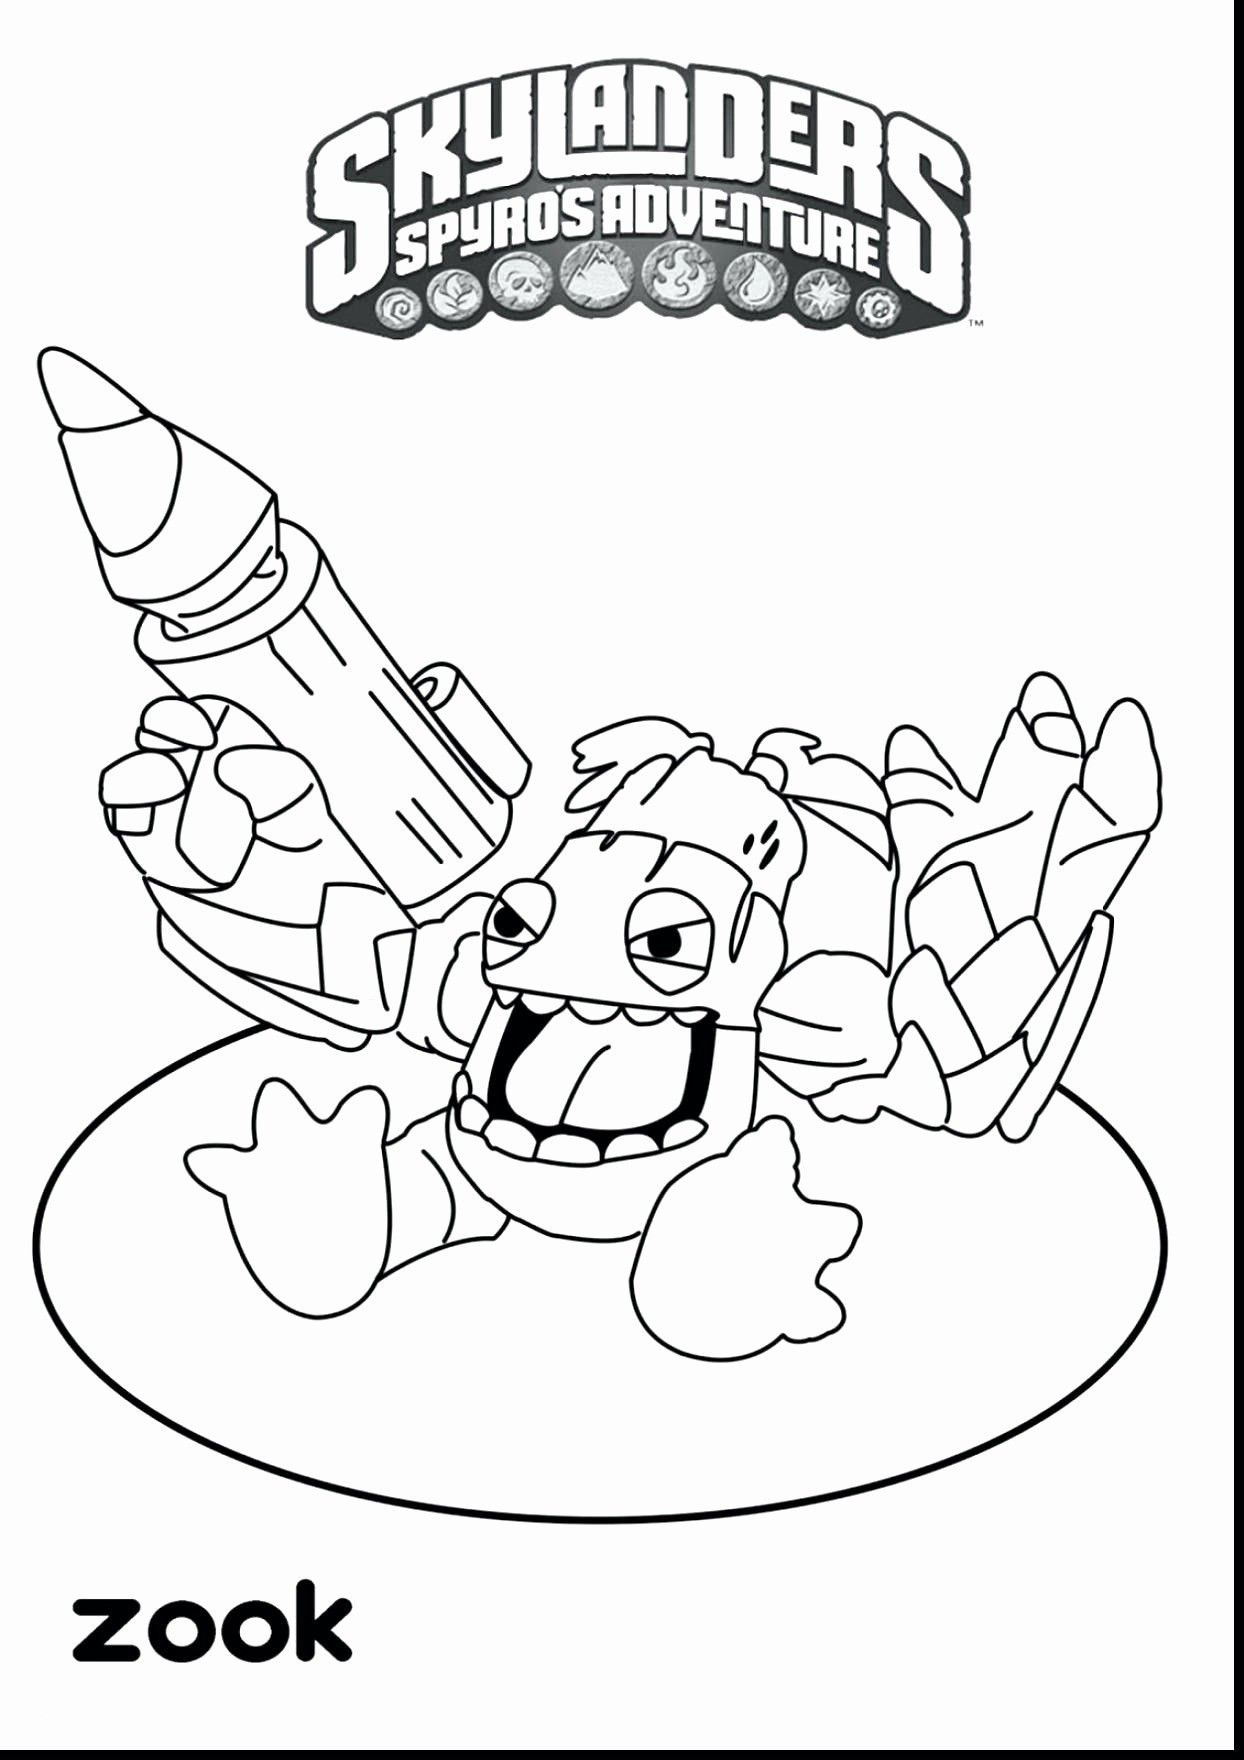 prinatable coloring pages Collection-Pages Brilliant Easy to Draw Instruments Home Coloring Pages Best Color Sheet 0d 6-h